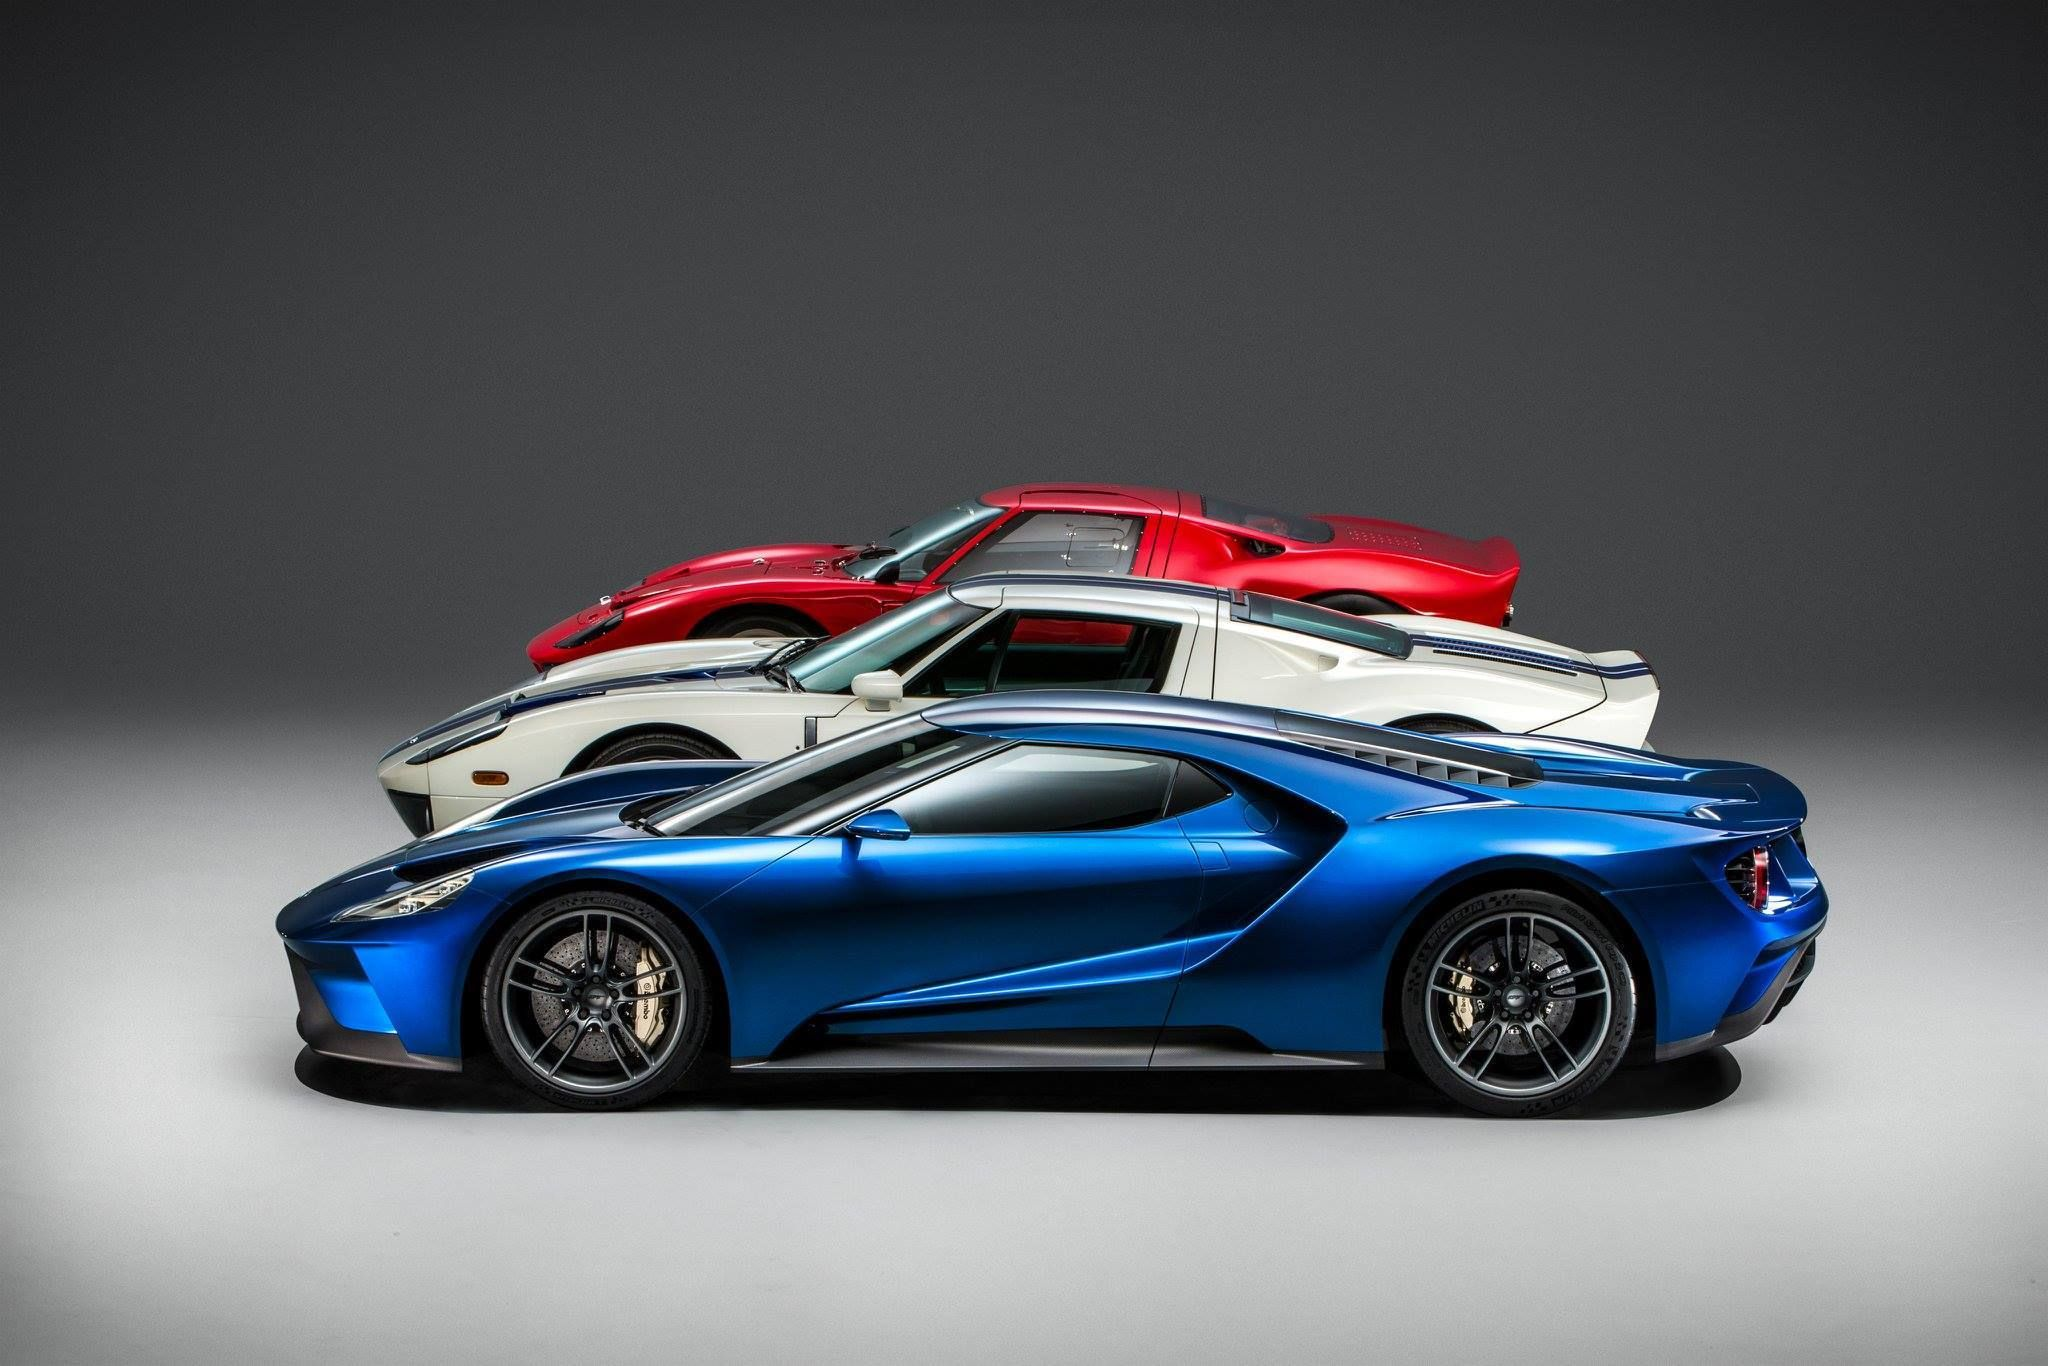 Gt40 Gt Stuff I Like Ford Gt 2017 Ford Gt 2005 Ford Gt